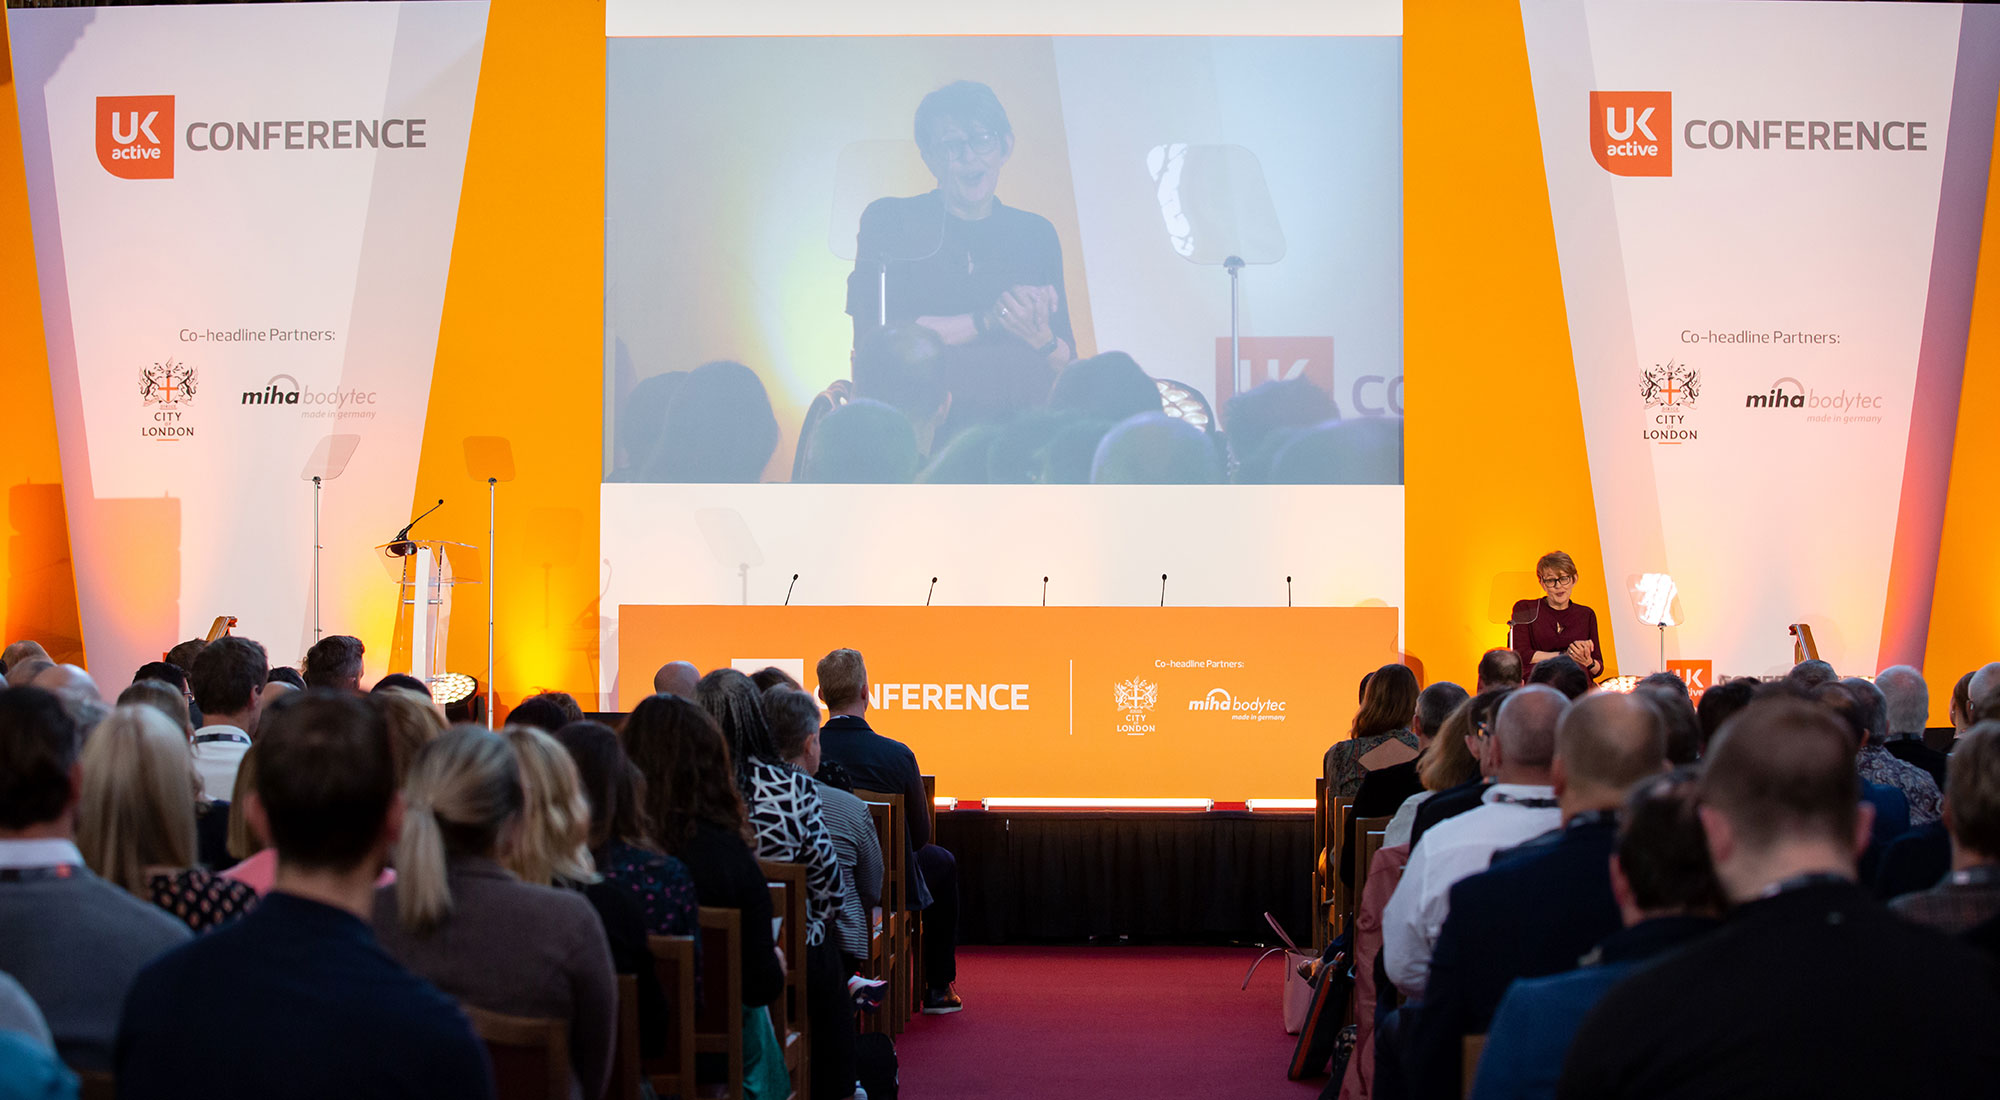 Baroness Tanni Grey-Thompson sets out shared ambition with Government in final speech at ukactive Conference